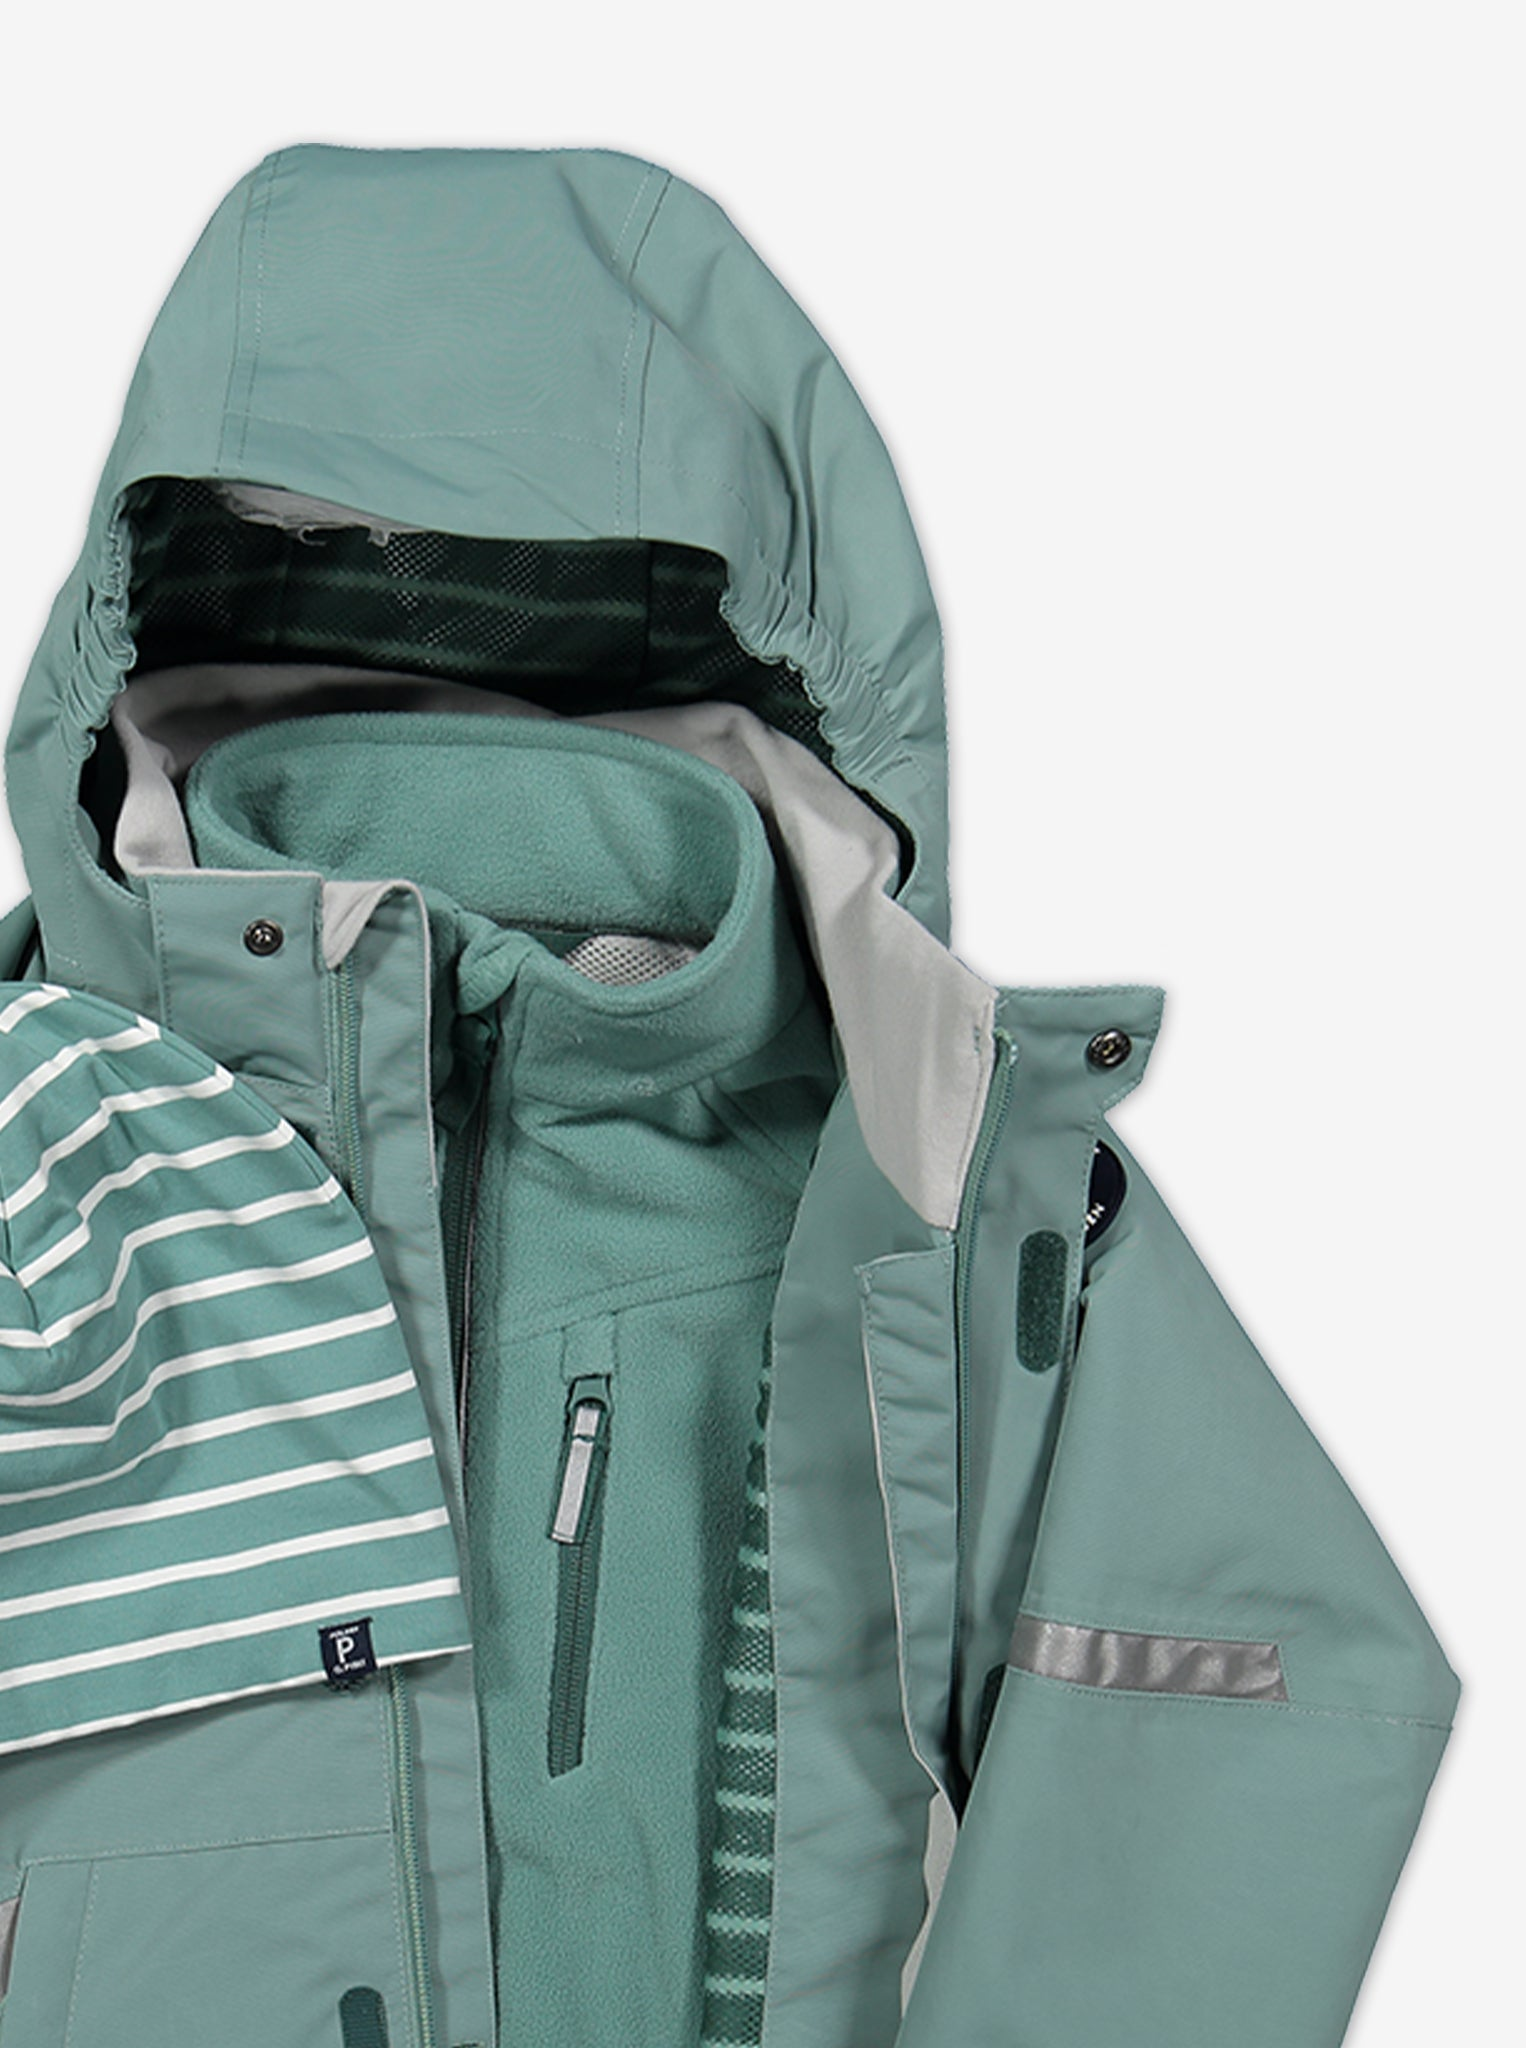 Close up view of a kids waterproof shell jacket, layered with kids waterproof fleece jacket in colour green.